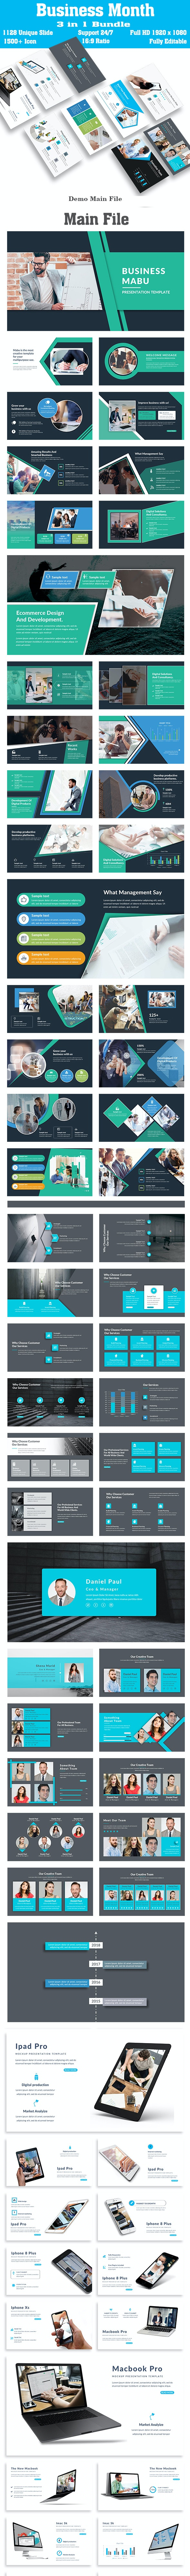 Business Bundle Month 3 in 1 PowerPoint Template - Business PowerPoint Templates